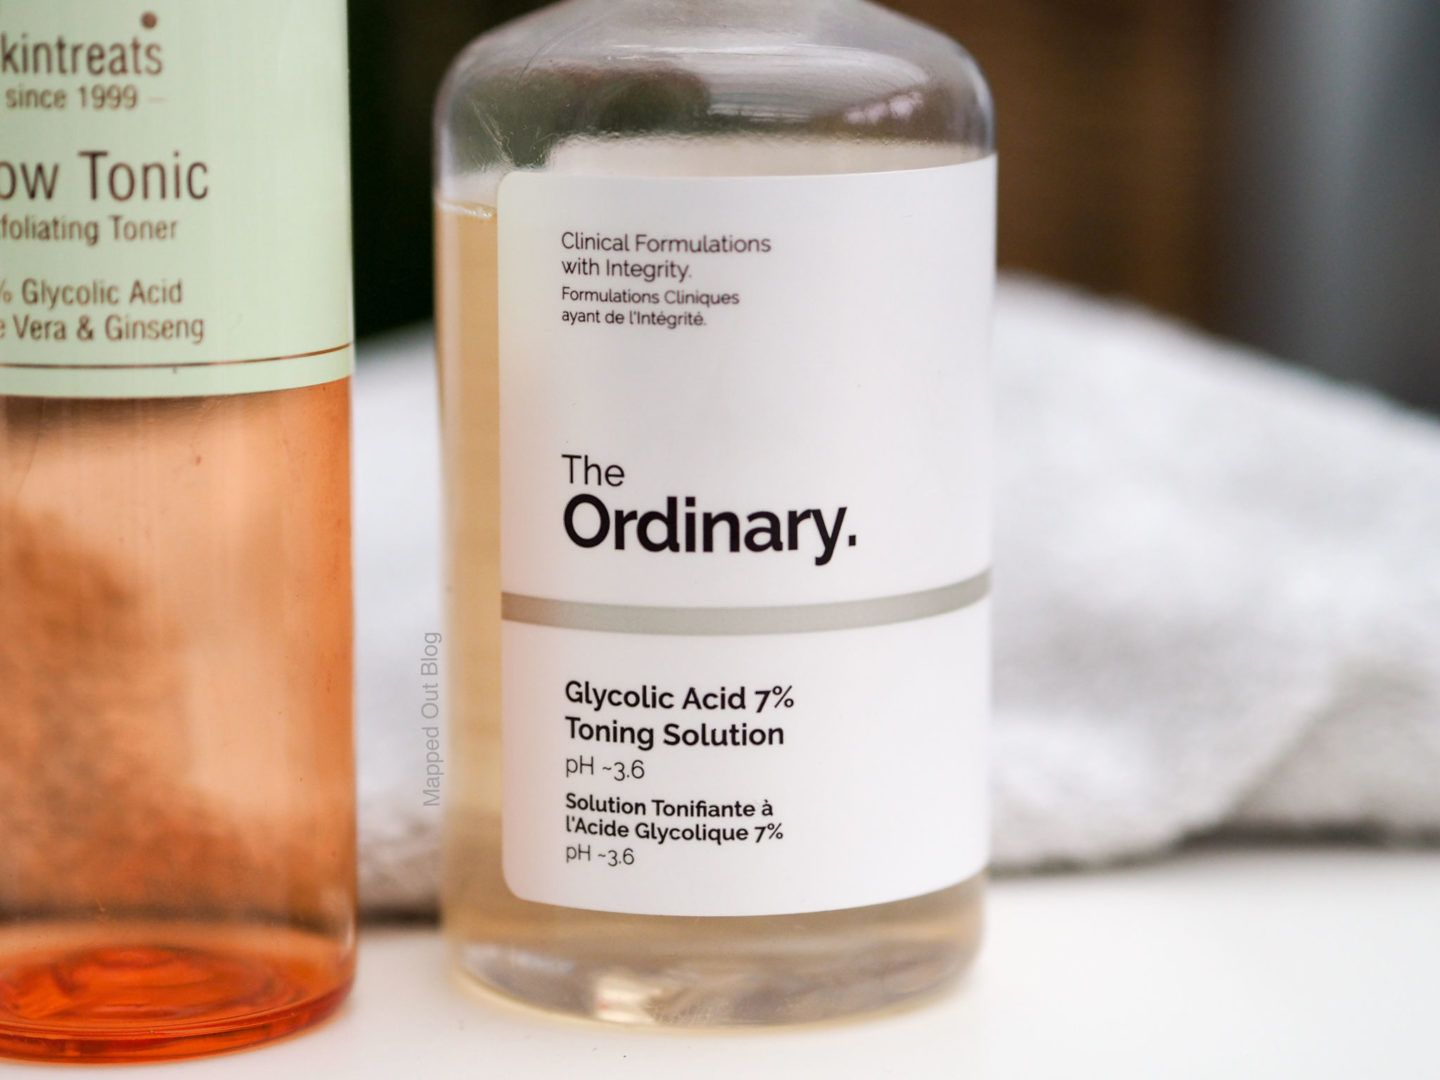 c033089f13b8 Is The Ordinary Glycolic Acid 7% Toning Solution a Pixi Glow Tonic dupe  At  less than half the price, I thought I would put it to the test and see how  it ...